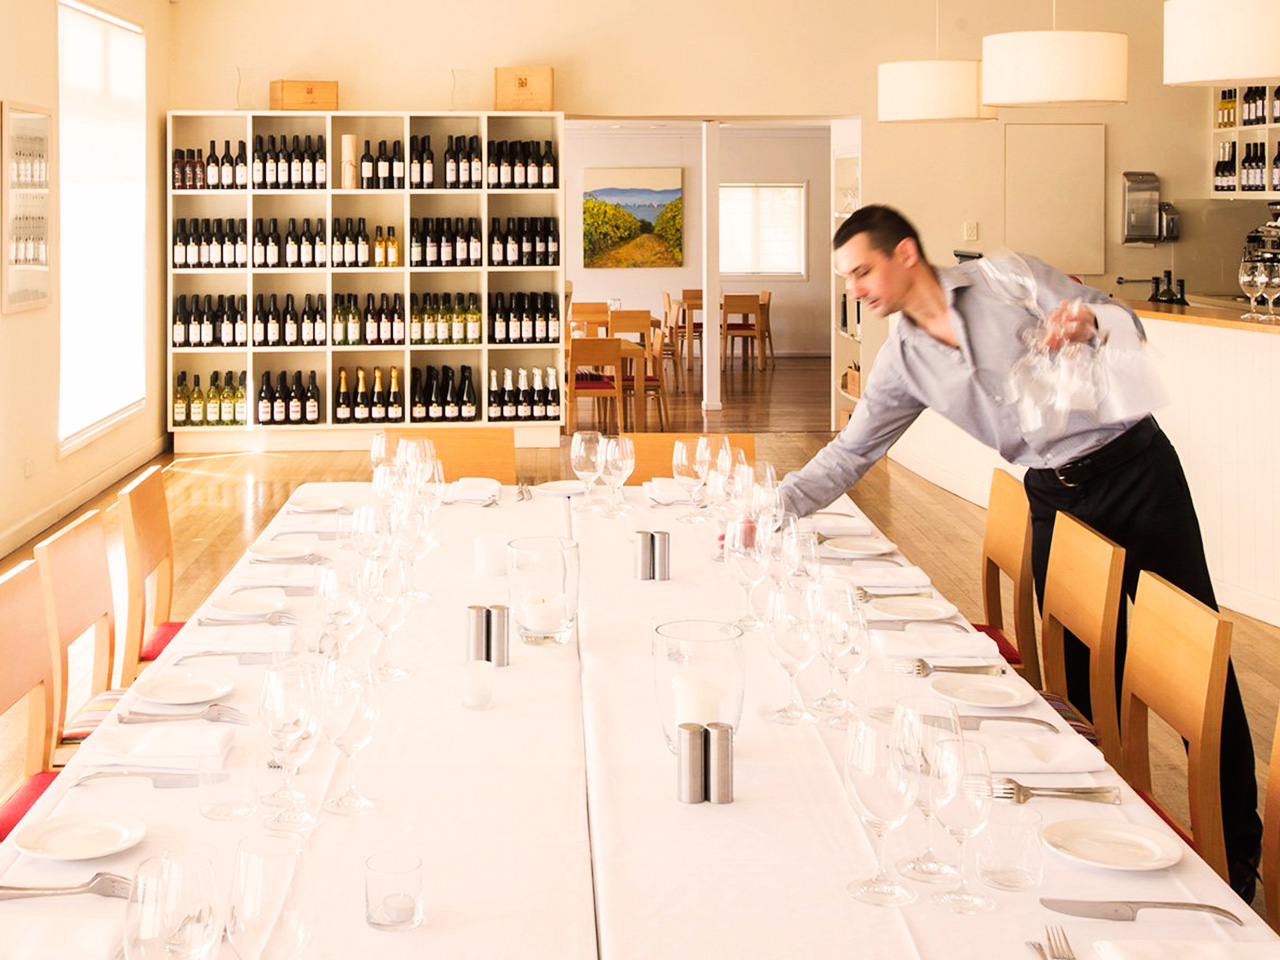 Man Setting Up The Long Table With Chairs And Wines On The Corner